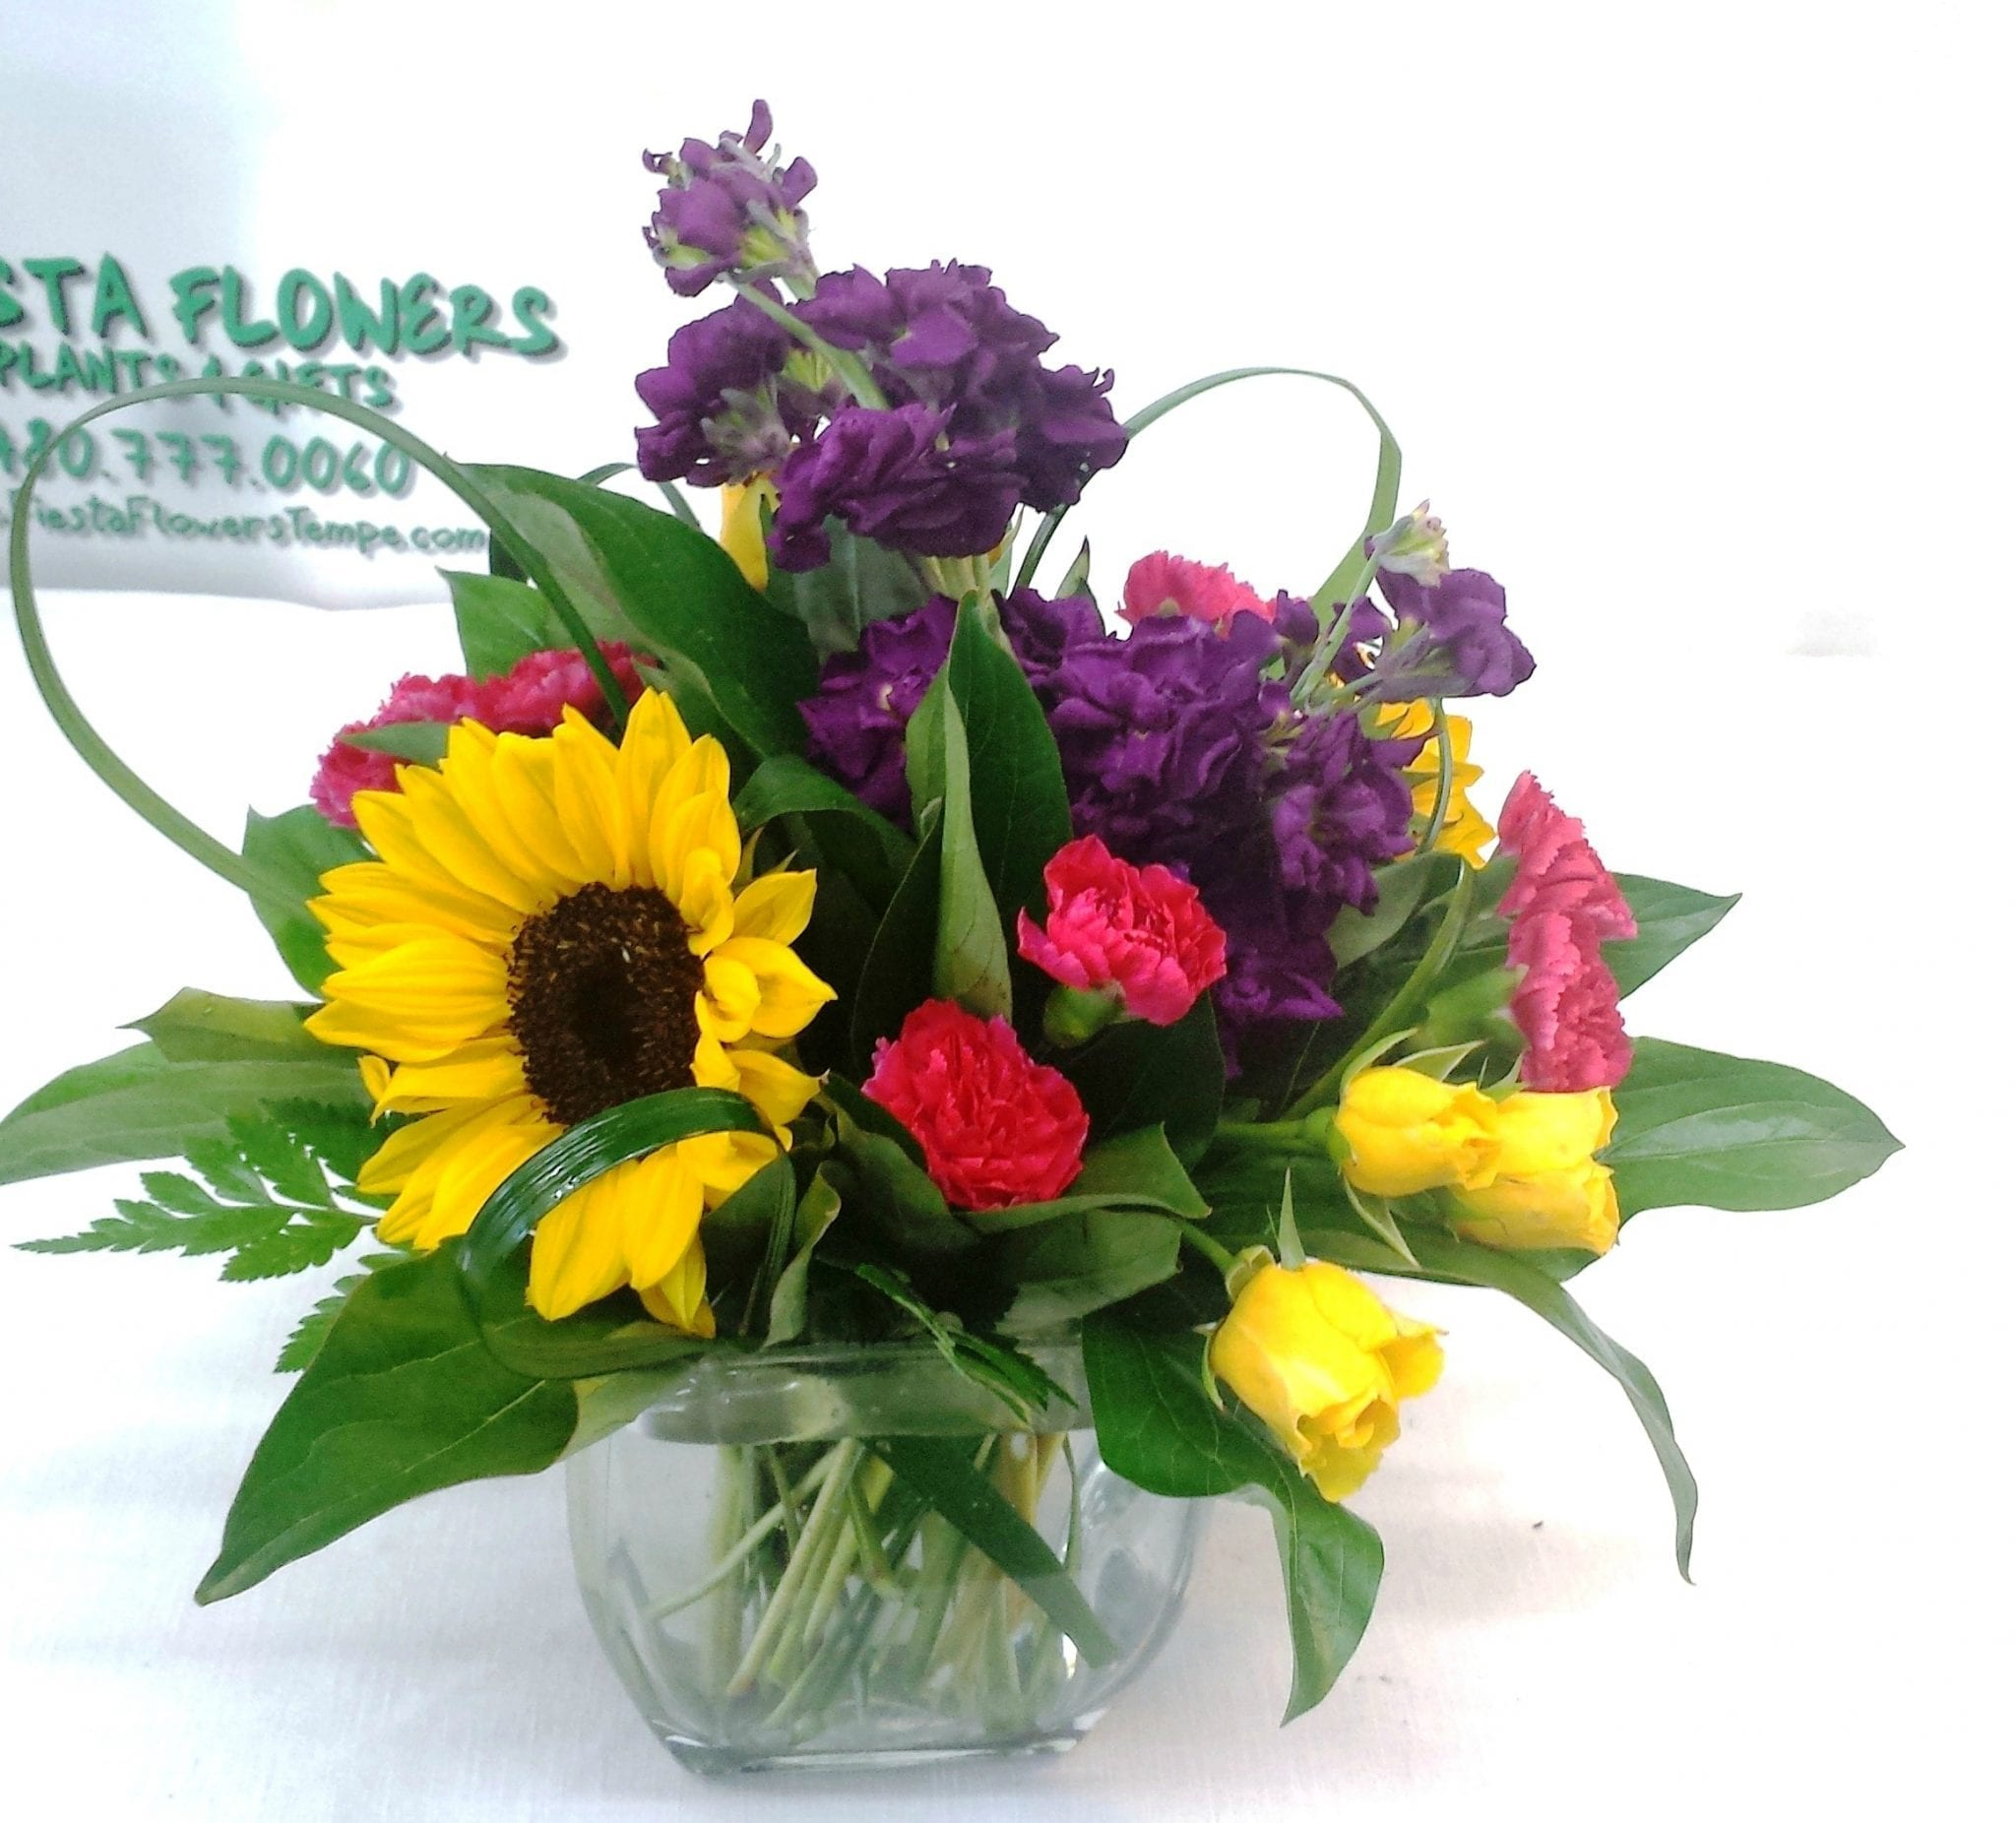 SAME DAY DELIVERY Blossoms in Vogue V 1010 Fiesta Flowers Plants & Gifts